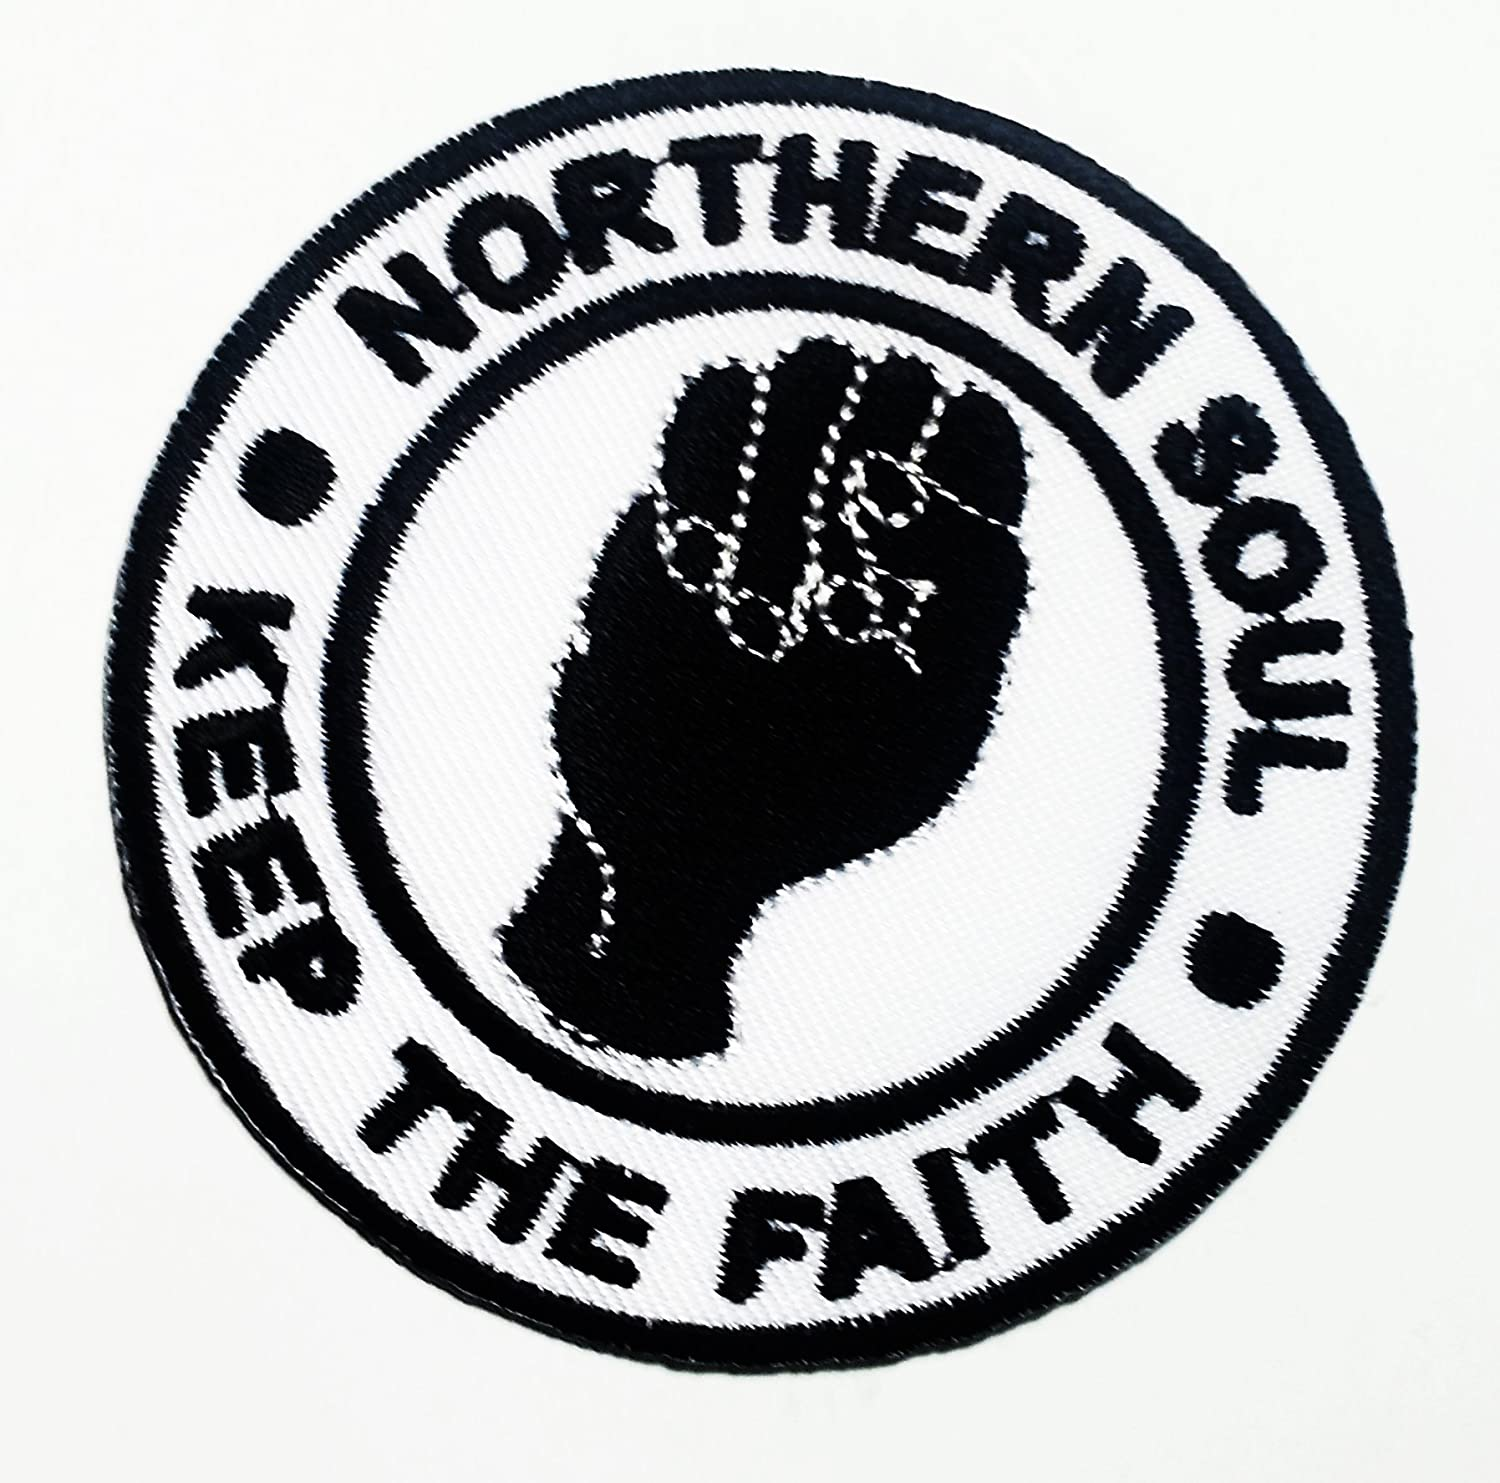 KEEP THE FAITH BLACK NORTHERN SOUL PATCH WHITE